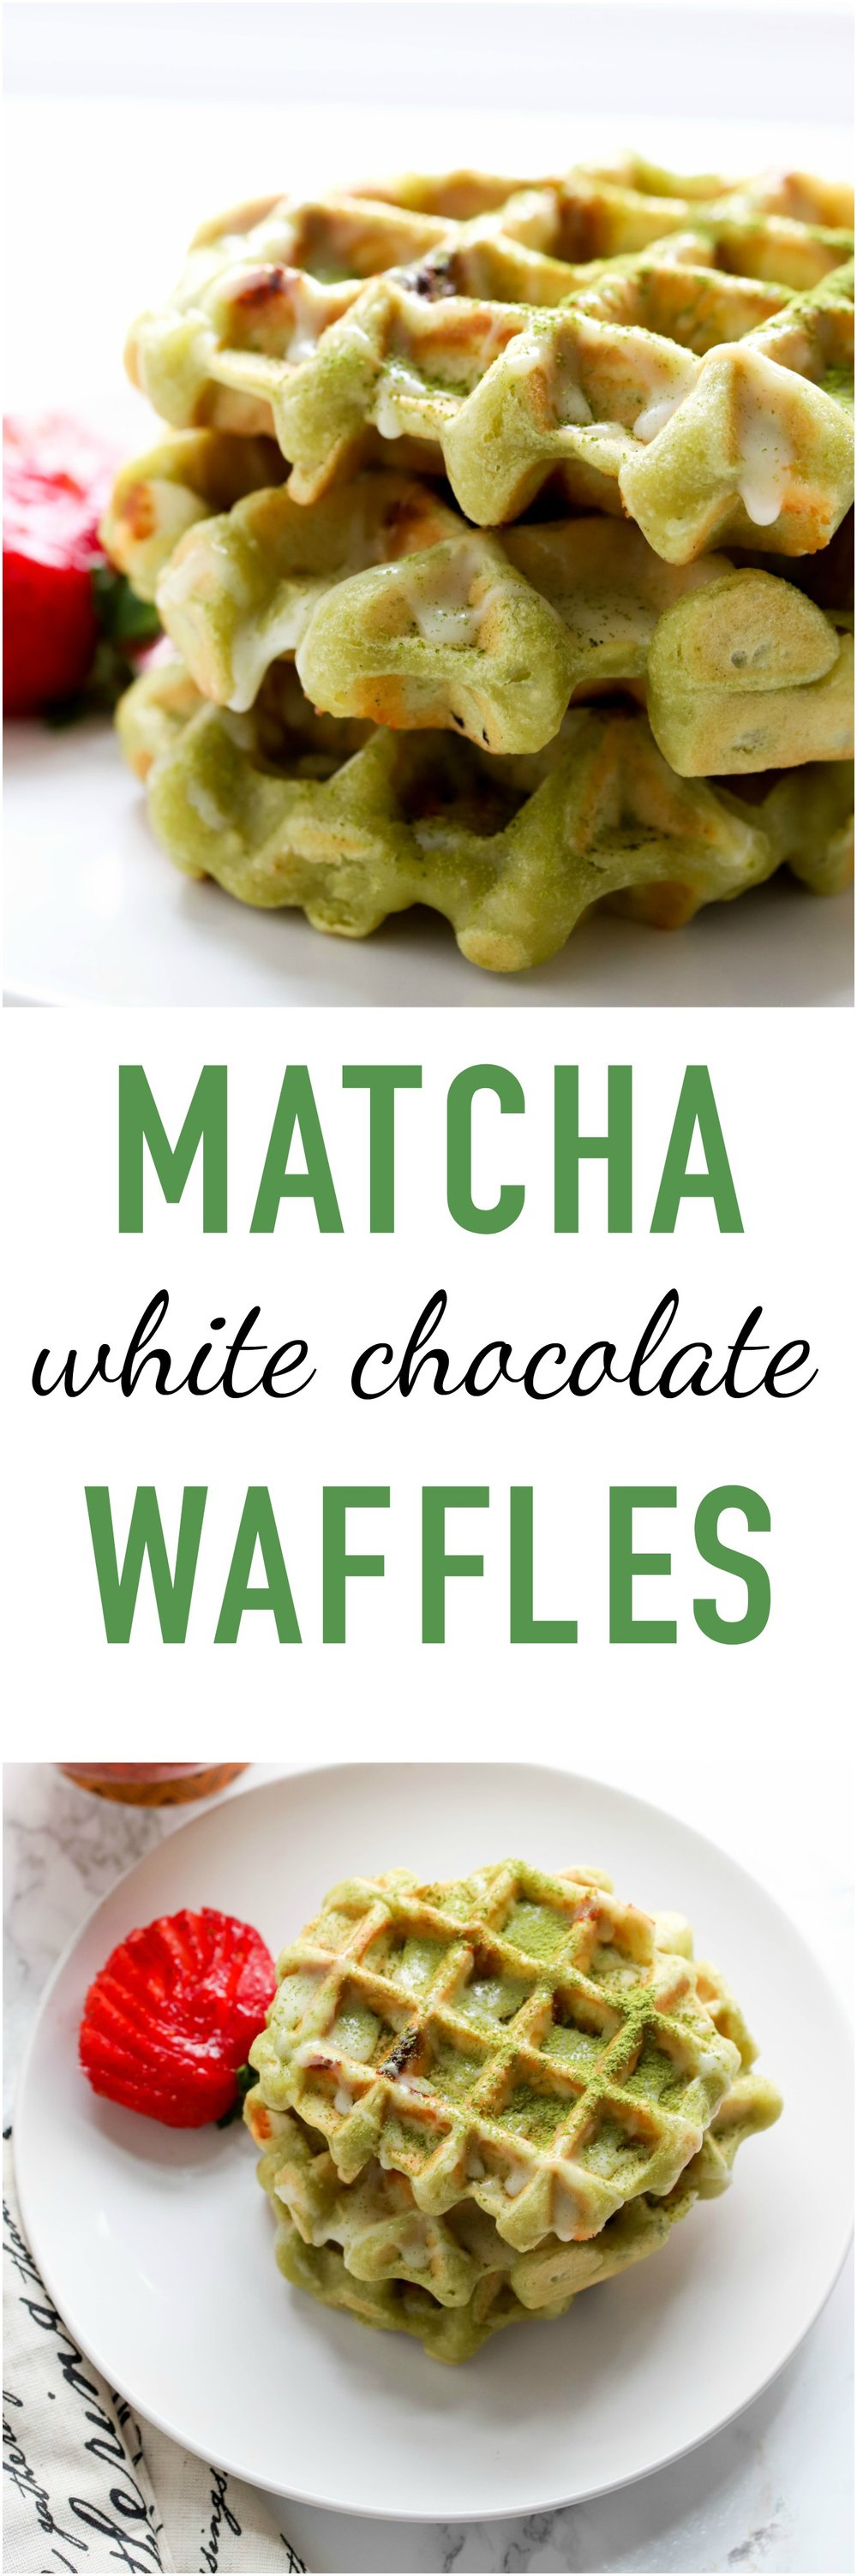 Matcha White Chocolate Waffles are almost vegan and totally decadent to make your morning special! There is a hint of matcha flavor in every bite and pairs beautifully with white chocolate chips!